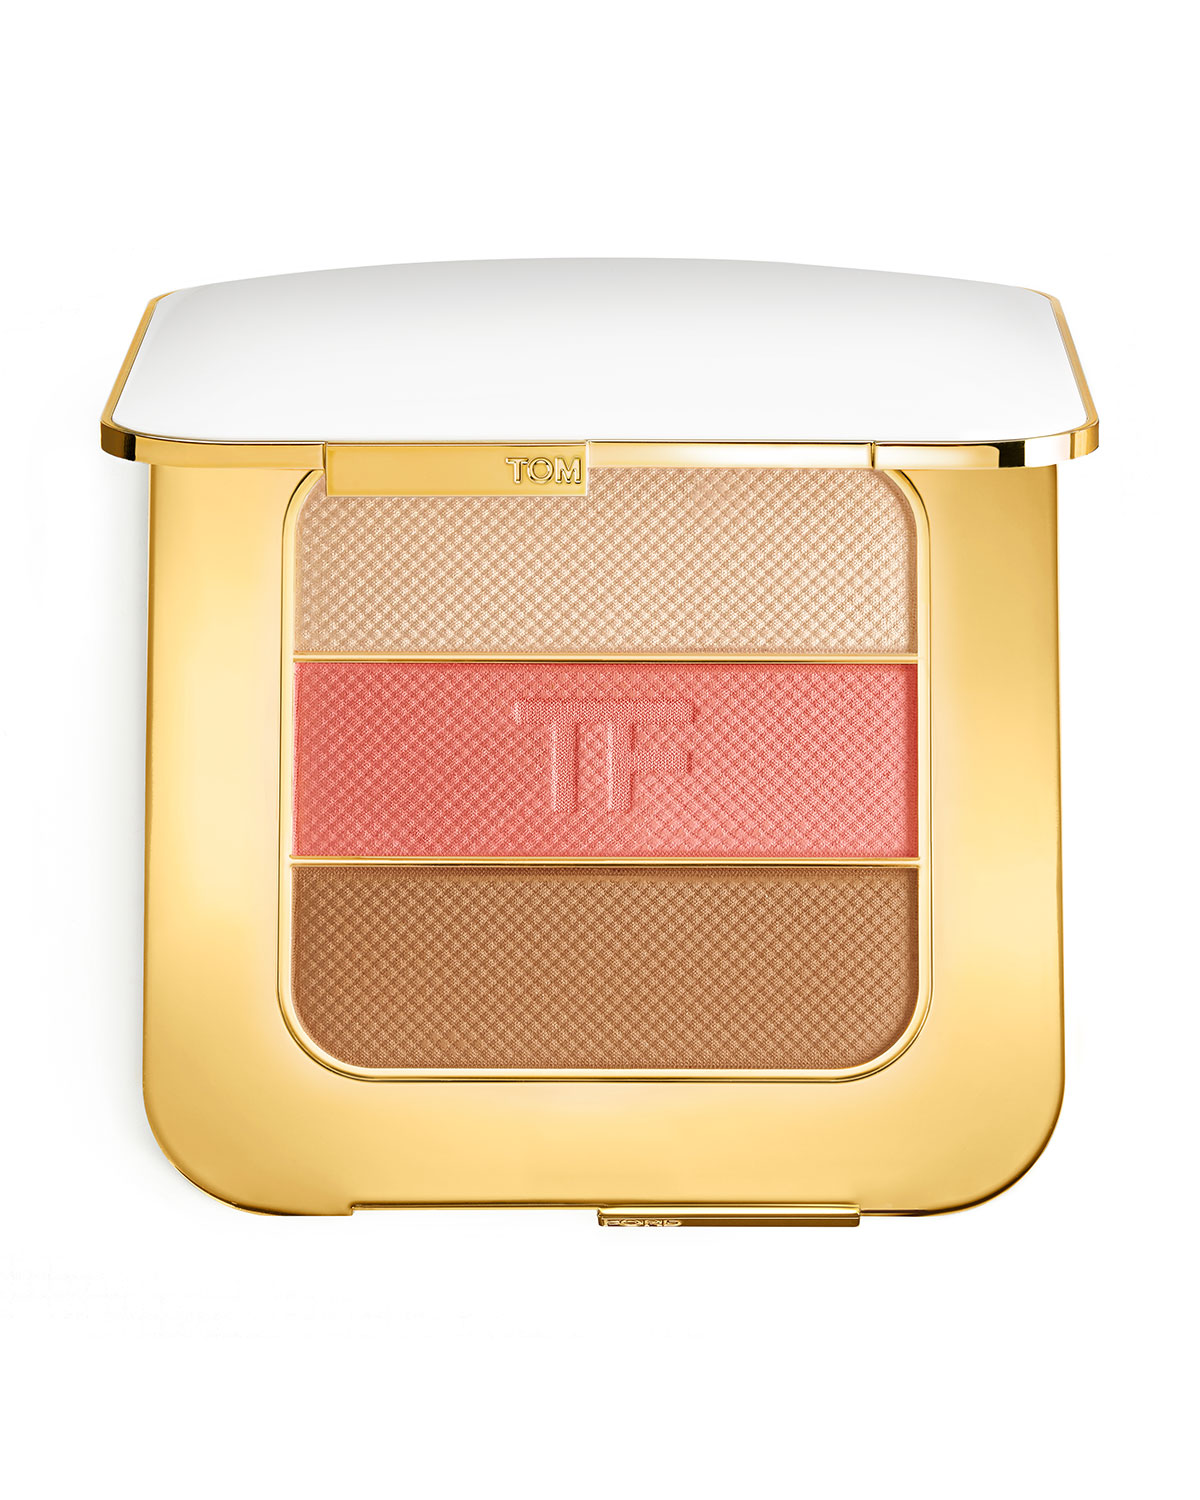 Soleil Contouring Compact - The Afternooner - TOM FORD Beauty